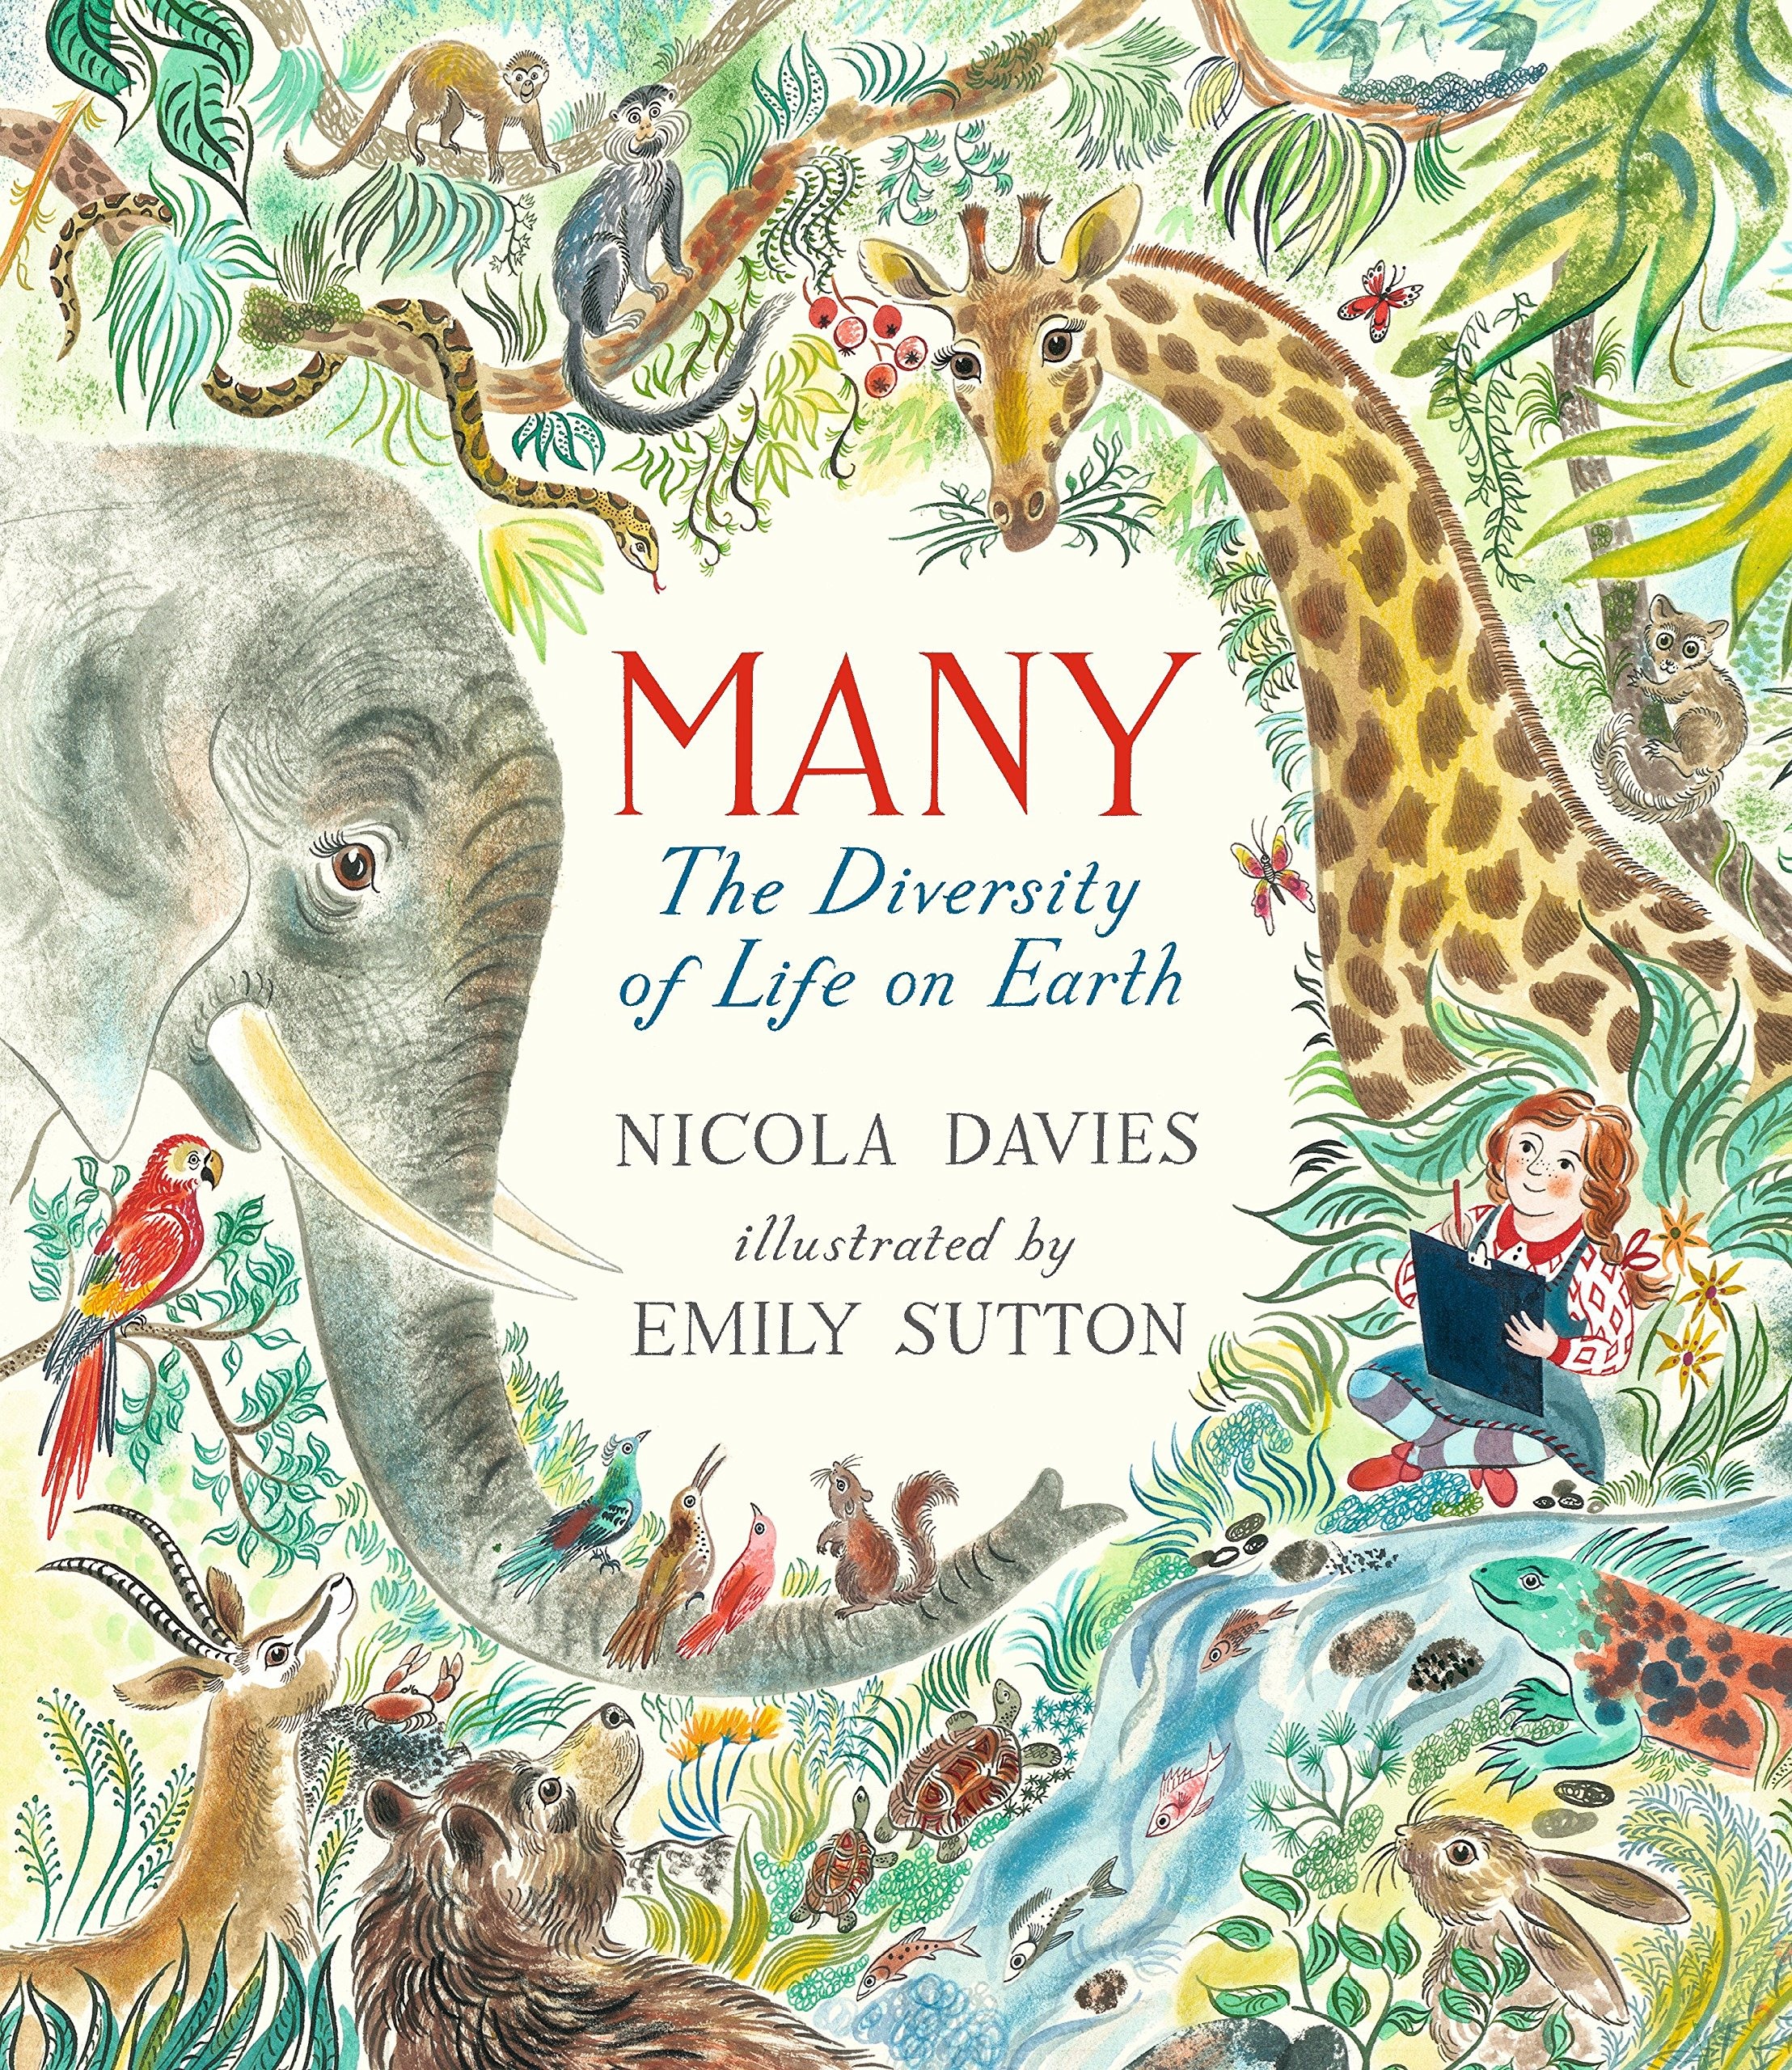 Many the diversity of life on earth - The same author of the first book mentioned, Nicola Davies. Oh my, this book is beautifully illustrated and carries a short and simple, yet powerful message along with perfectly struggles together words that help kids grasp the concept of life.